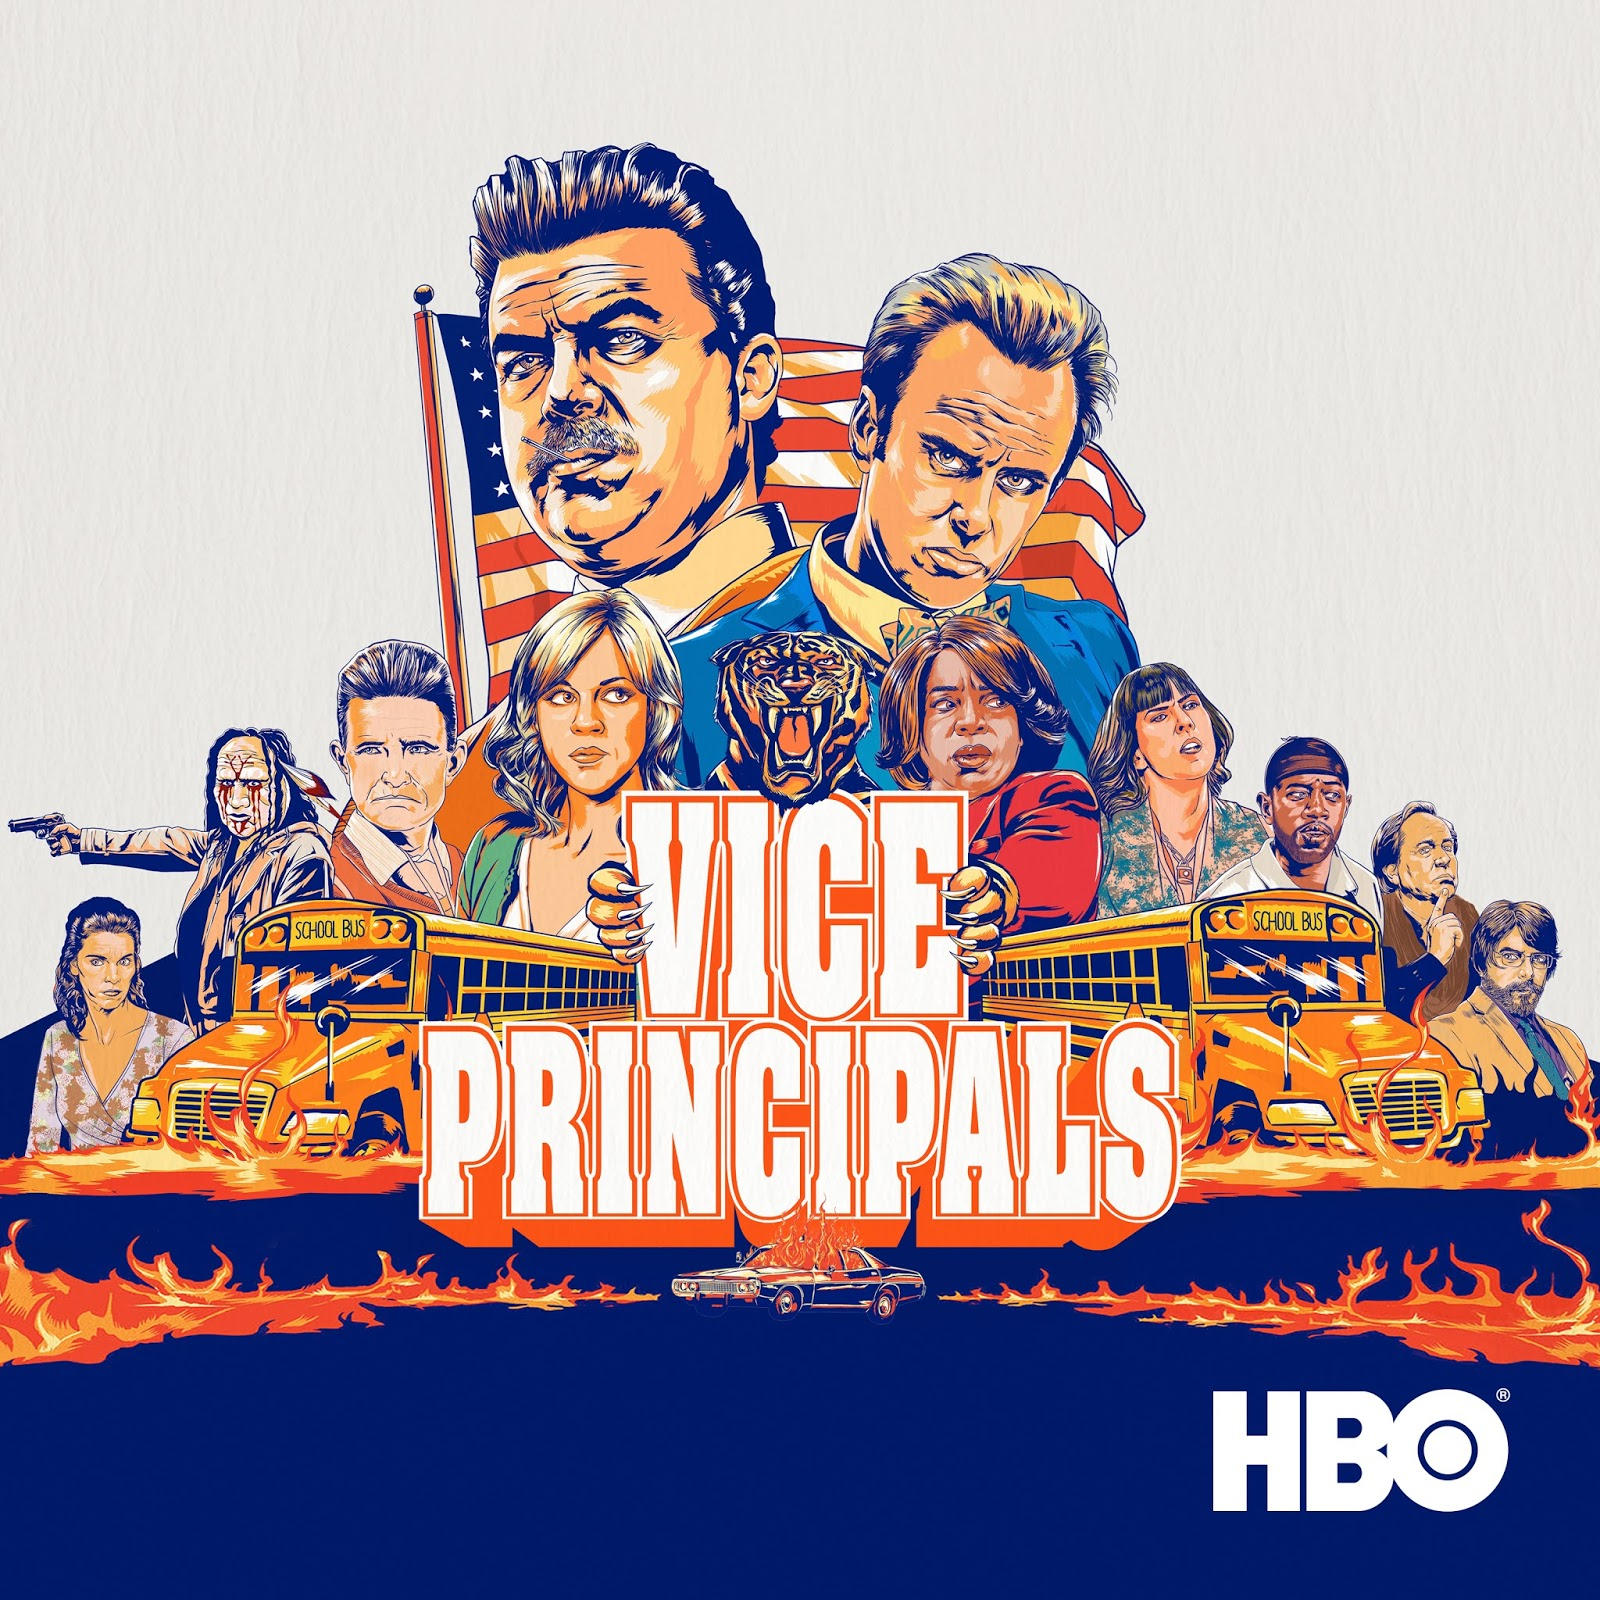 GIVEAWAY: Digital HD code for HBO's Vice Principals, season 2